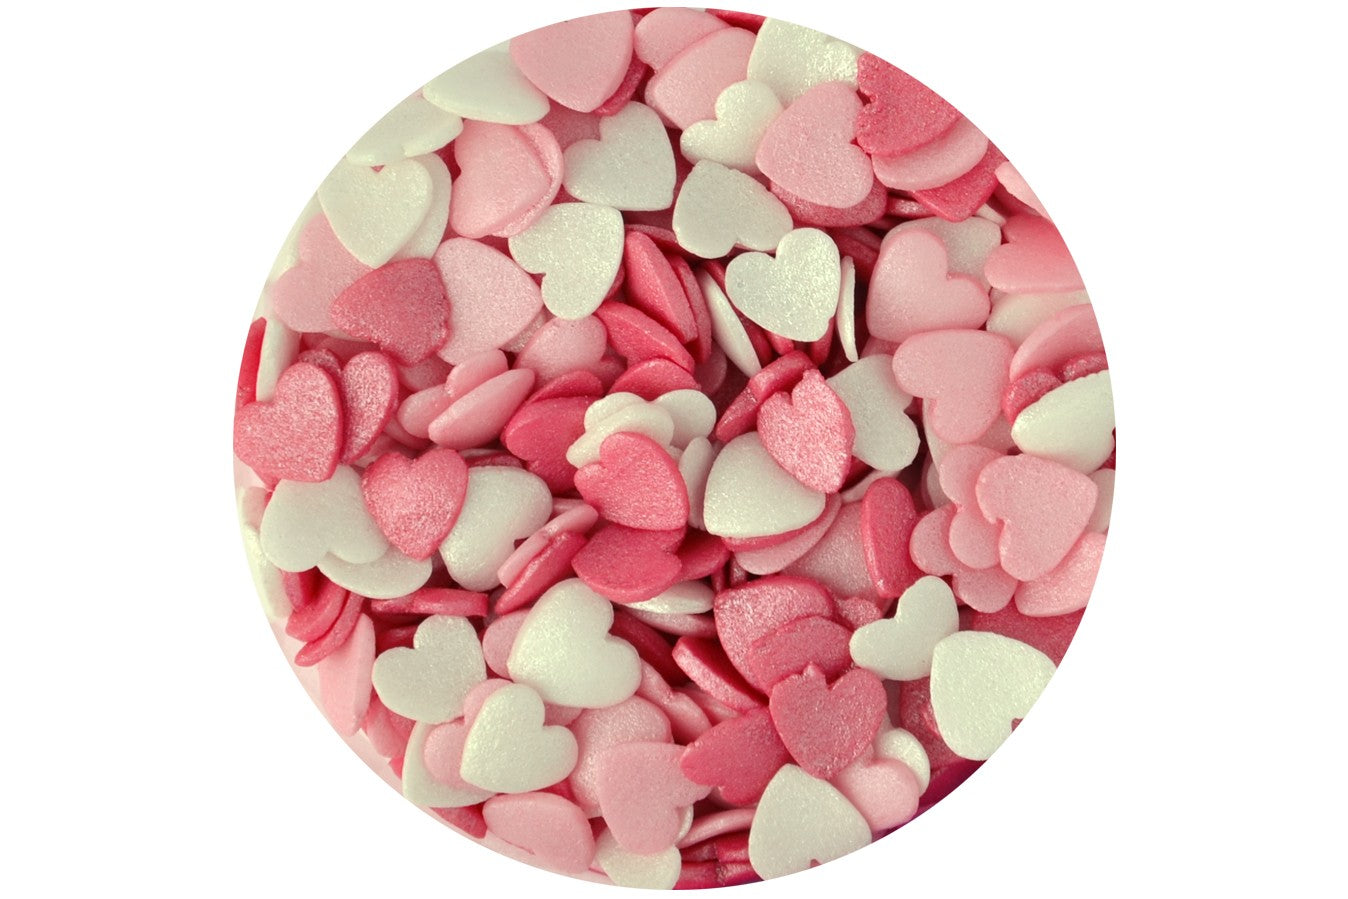 Sugar Glimmer Hearts : Candy Floss 65g